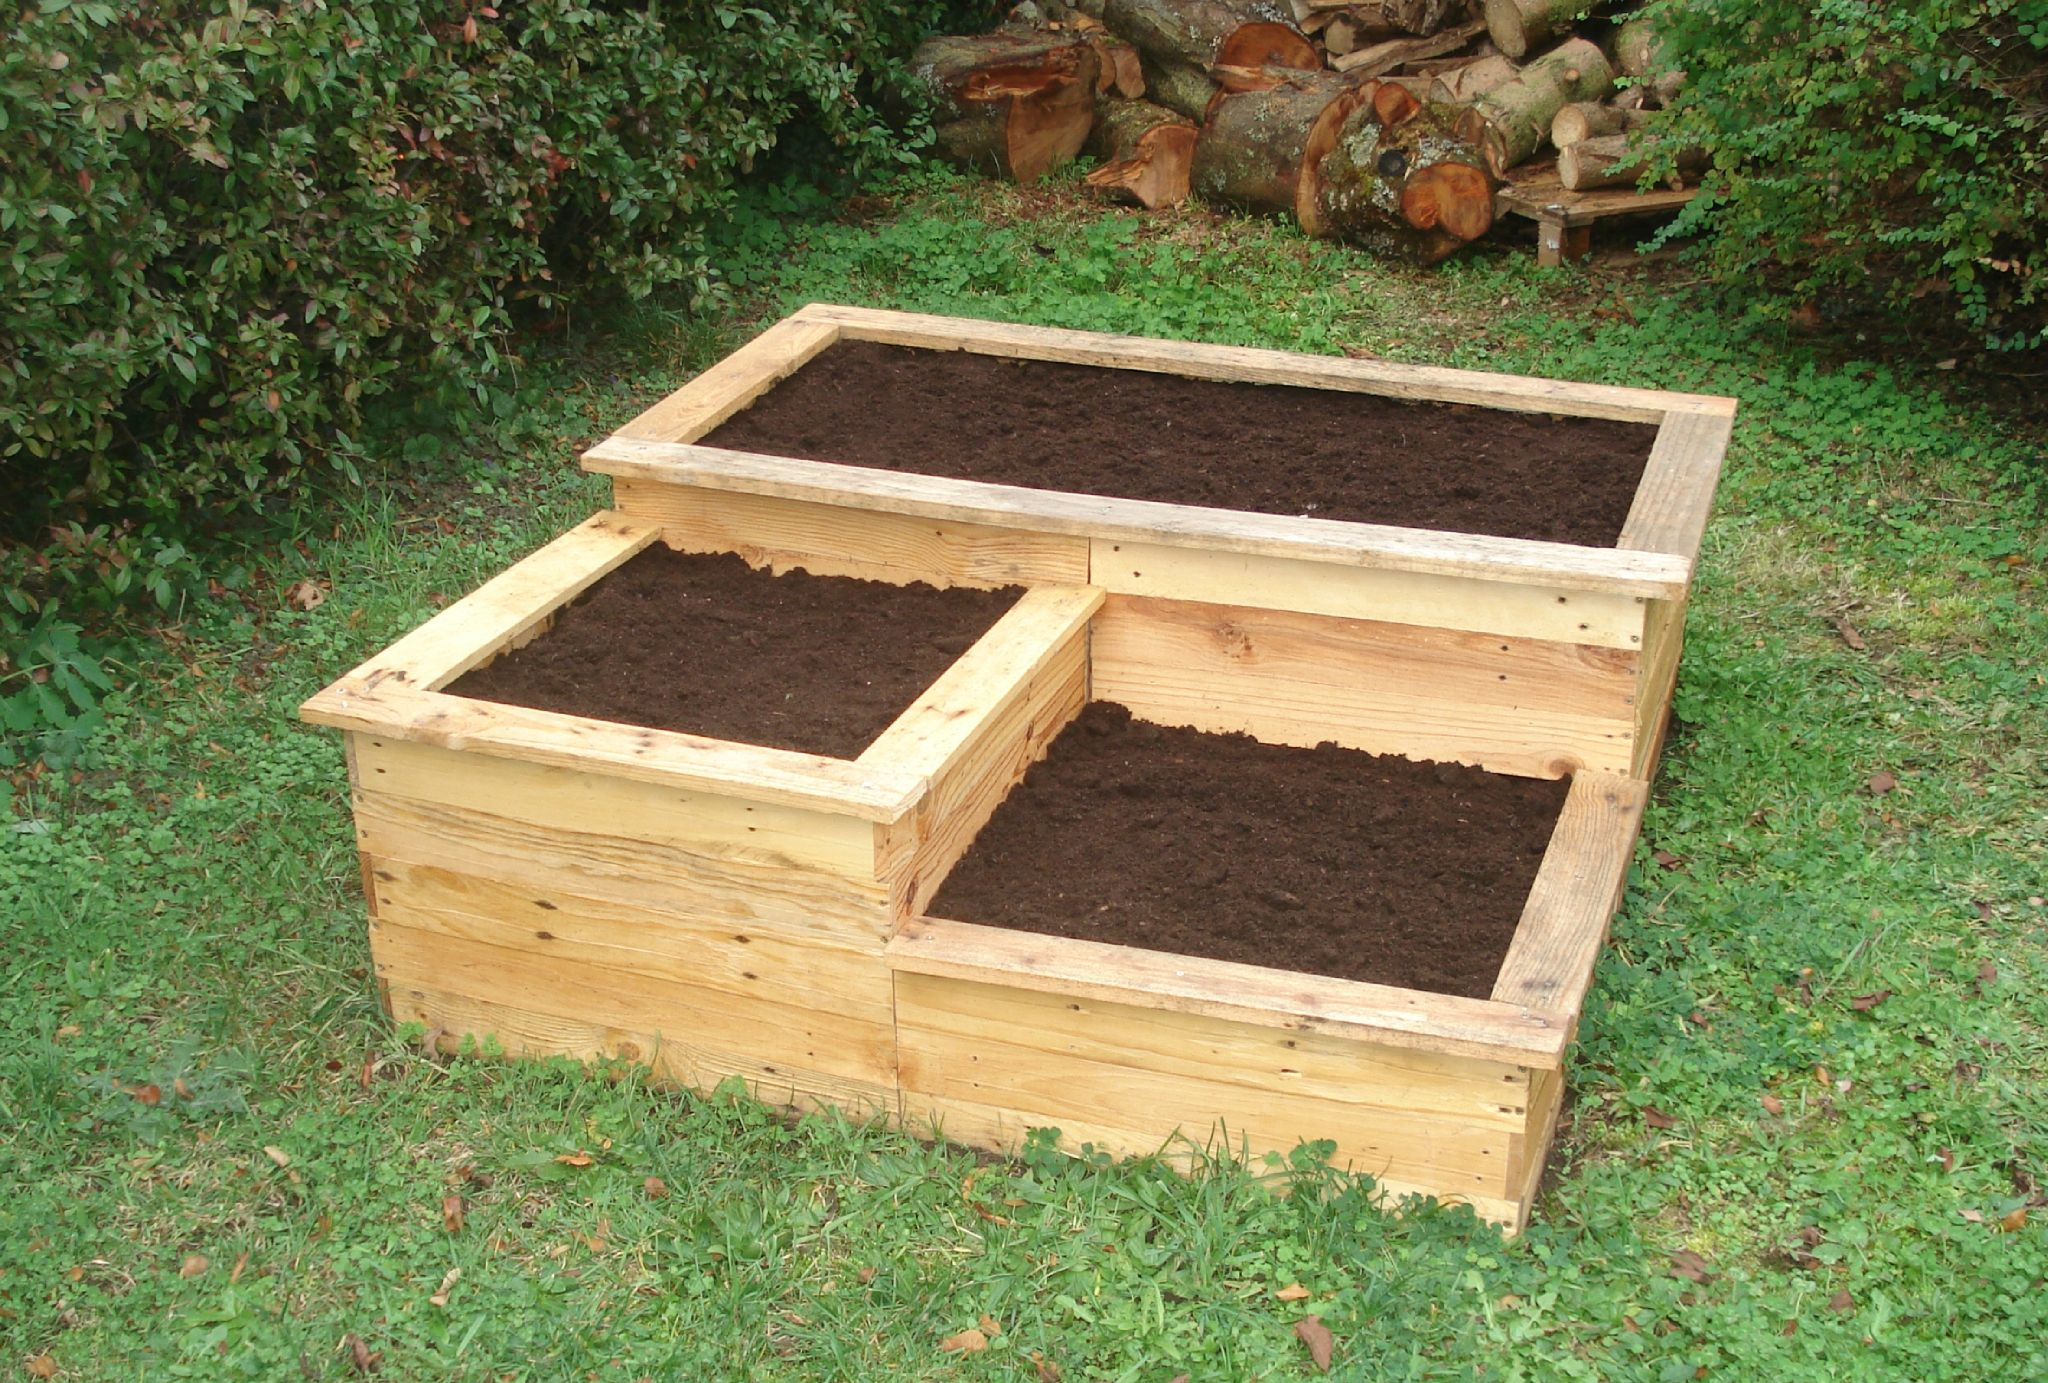 diy carr potager en bois de palette le blog de b a potager en carr et permaculture. Black Bedroom Furniture Sets. Home Design Ideas